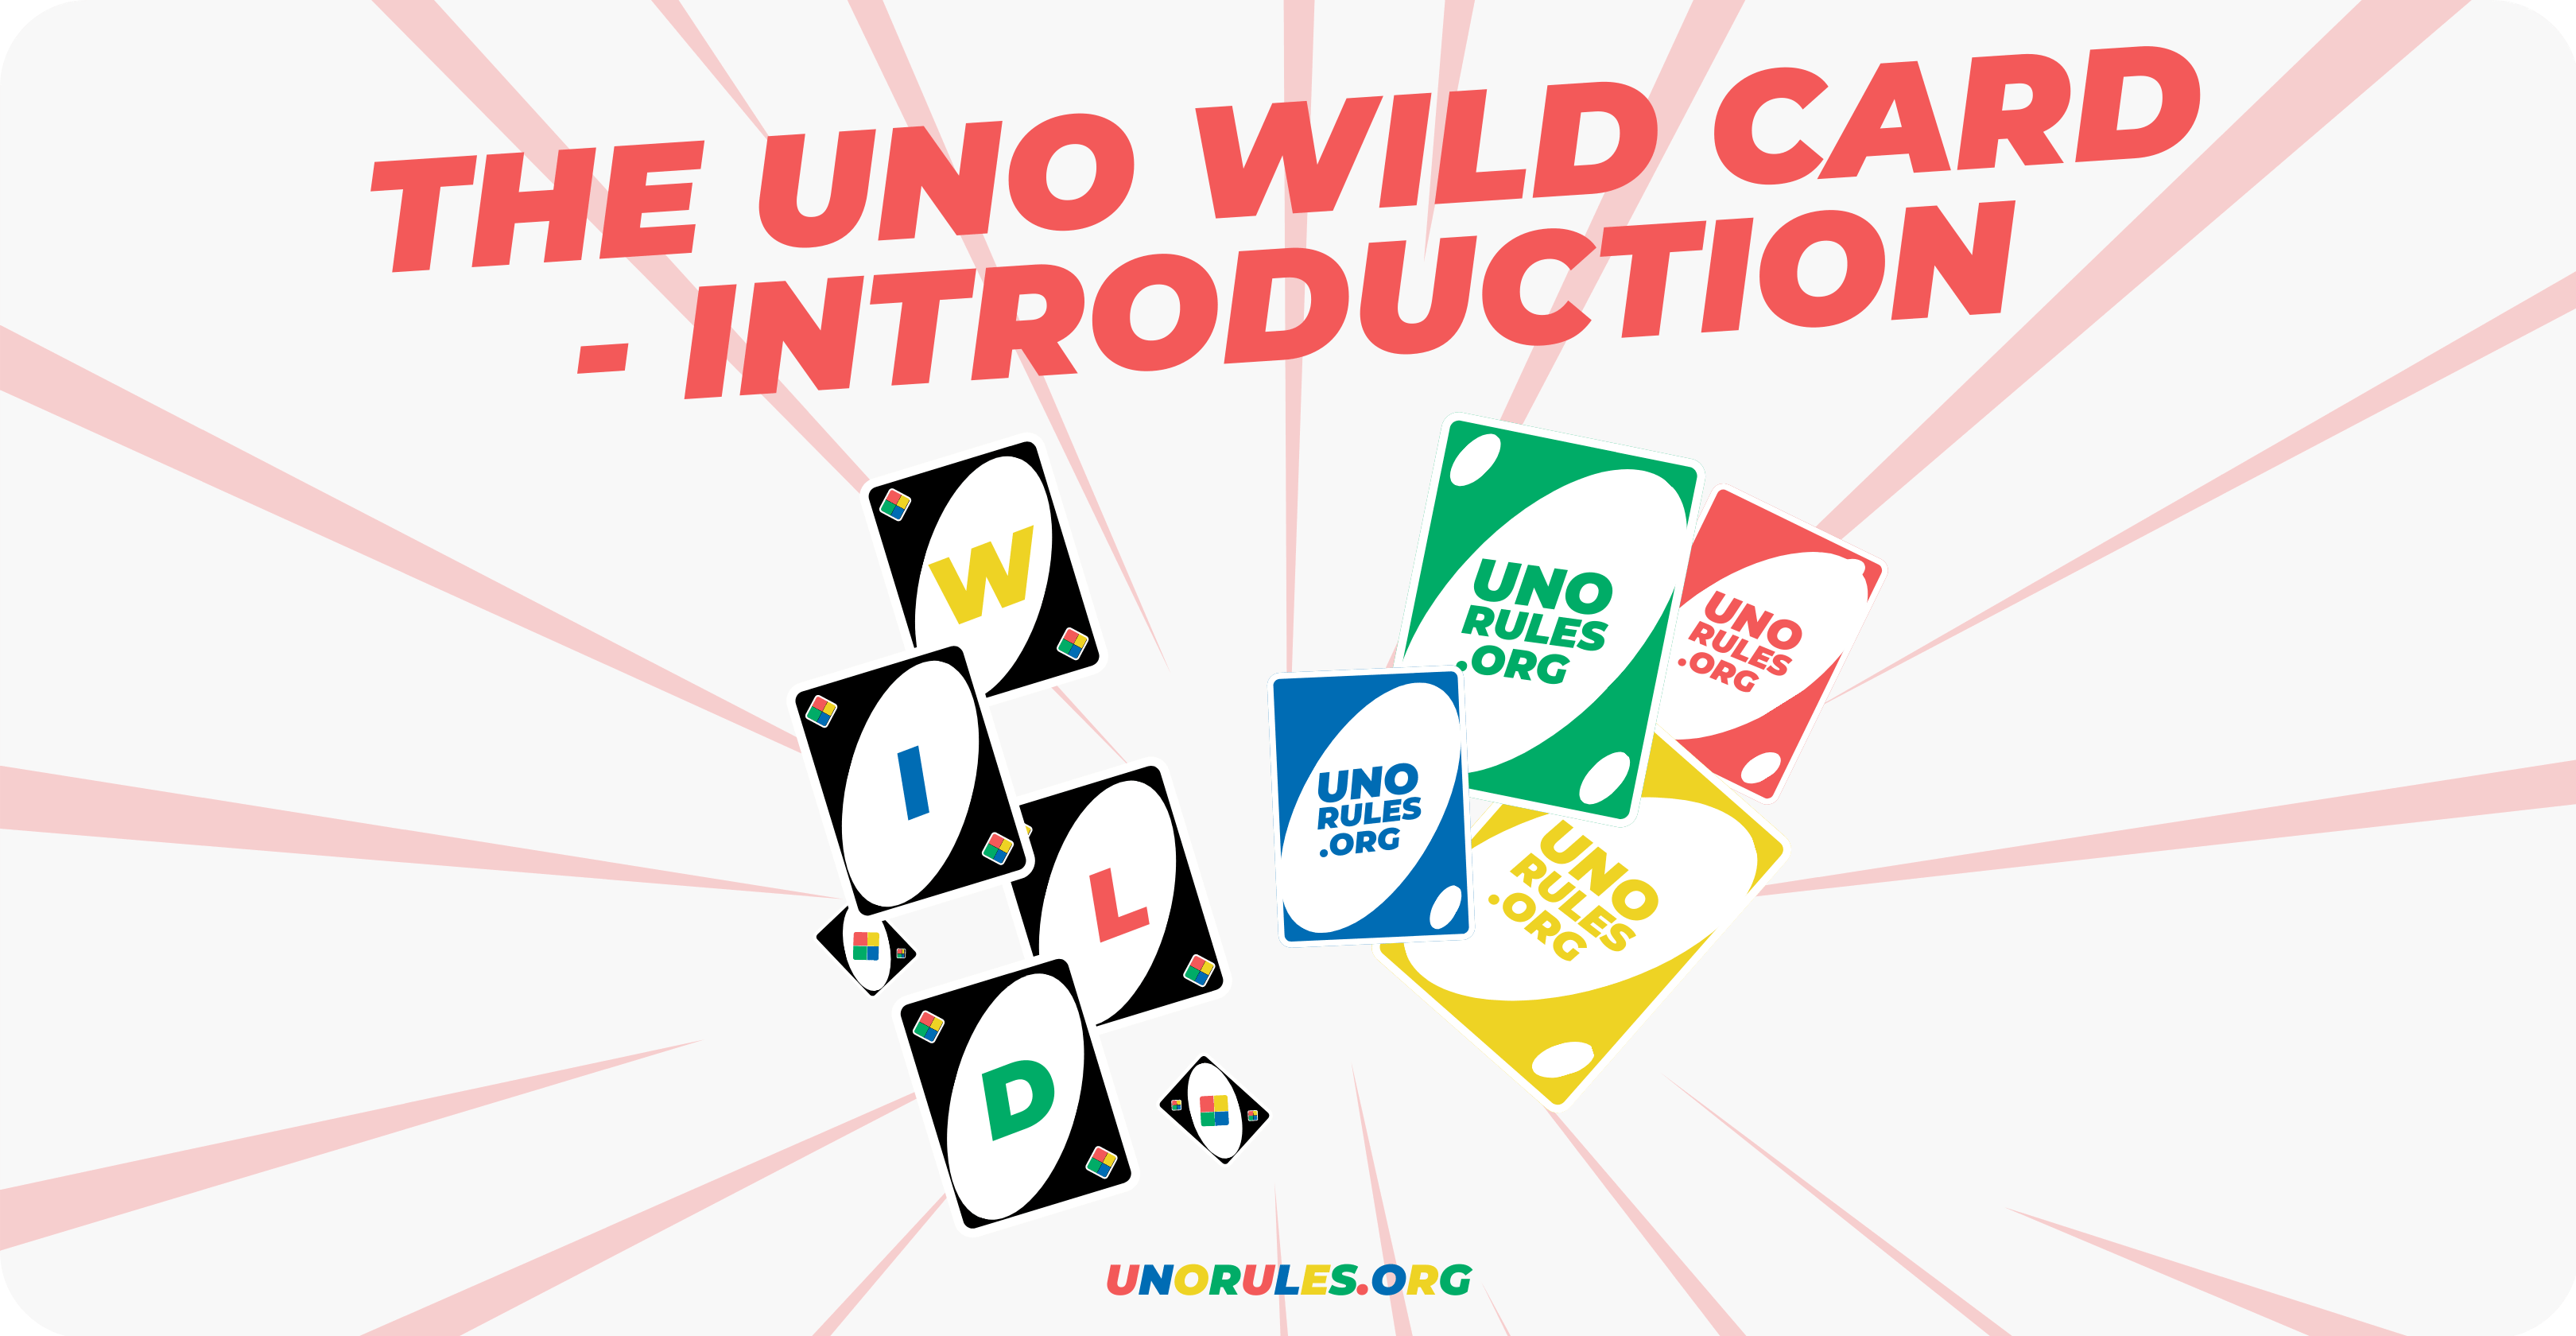 The Uno Wild card introduction